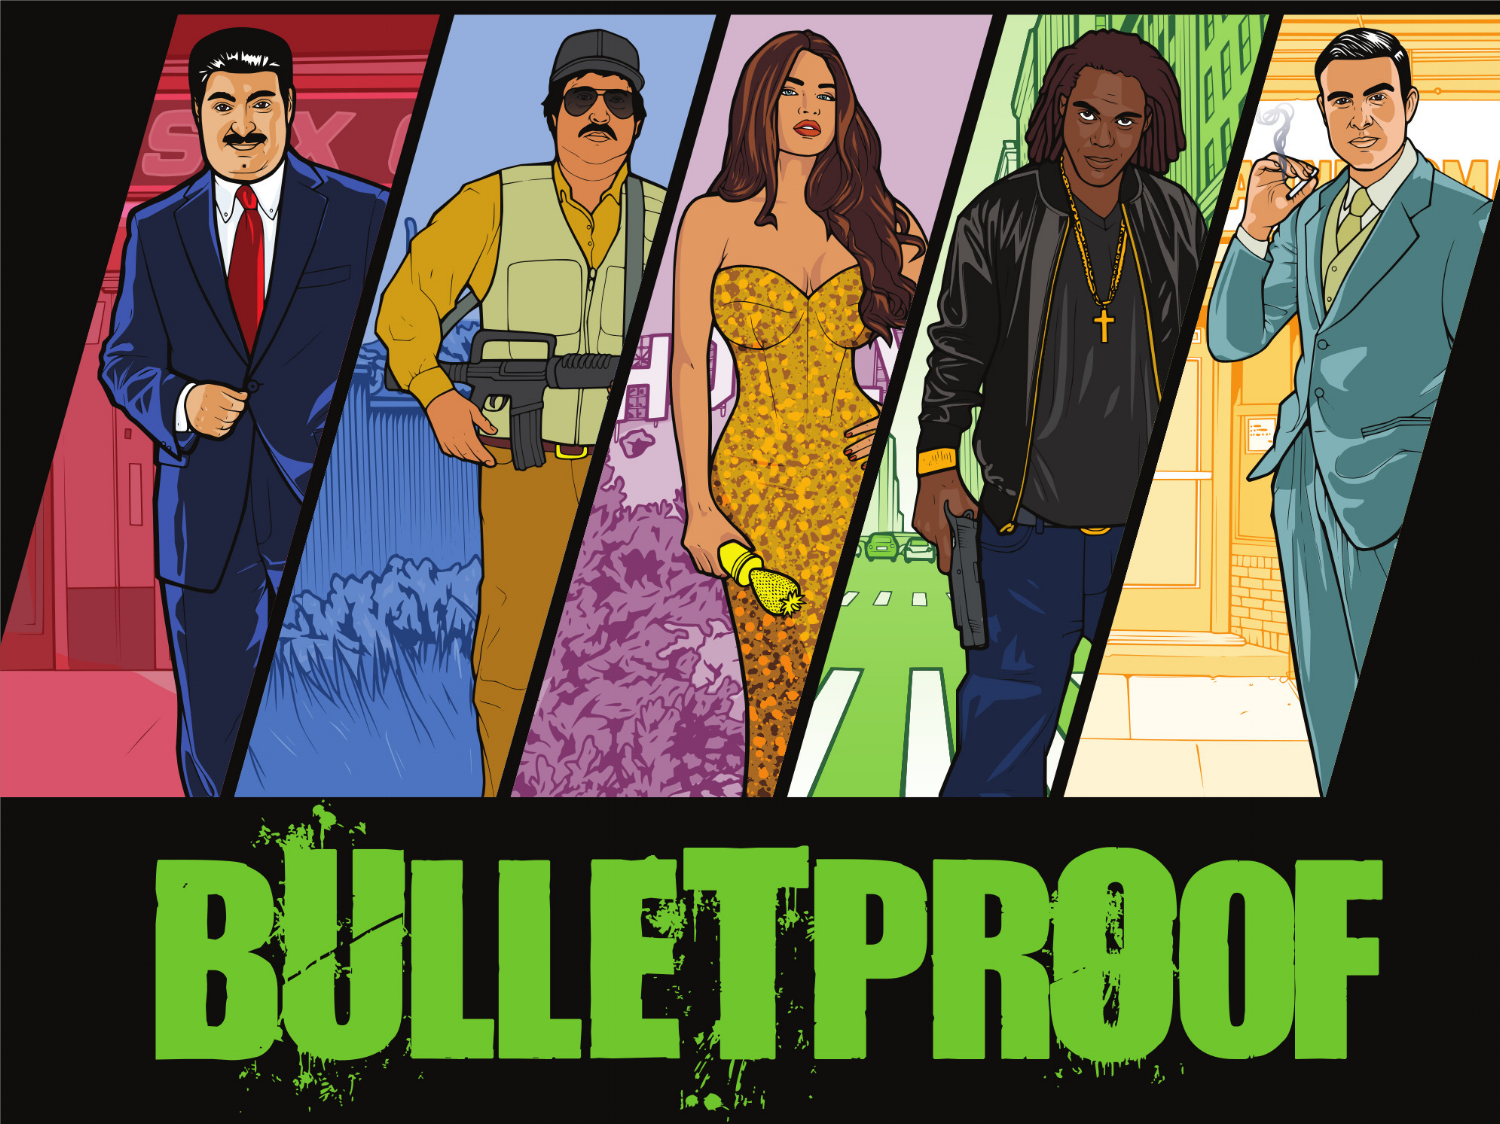 It's like Goodfellas meets Boyz in Tha Hood meets Grand Theft Auto meets the Godfather, with cards.